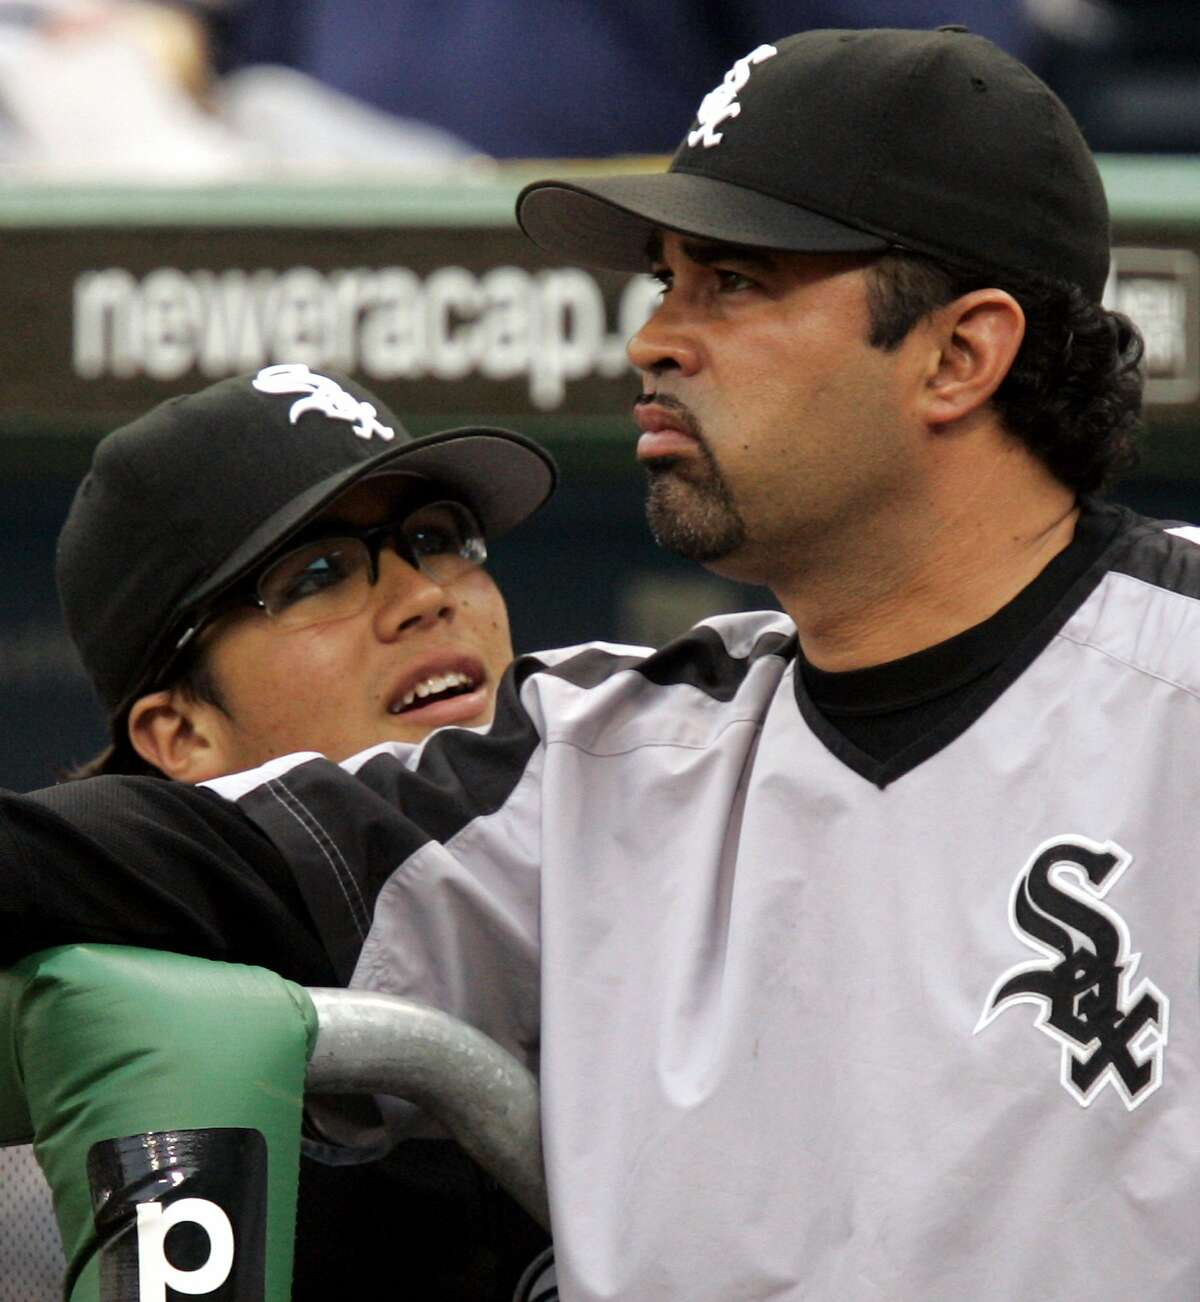 Chicago White Sox manager Ozzie Guillen's son, Ozney, 13, left, works with his dad as a batboy during a 4-3 win over the Pittsburgh Pirates in baseball action Wednesday, June 28, 2006, in Pittsburgh.(AP Photo/Gene J. Puskar)